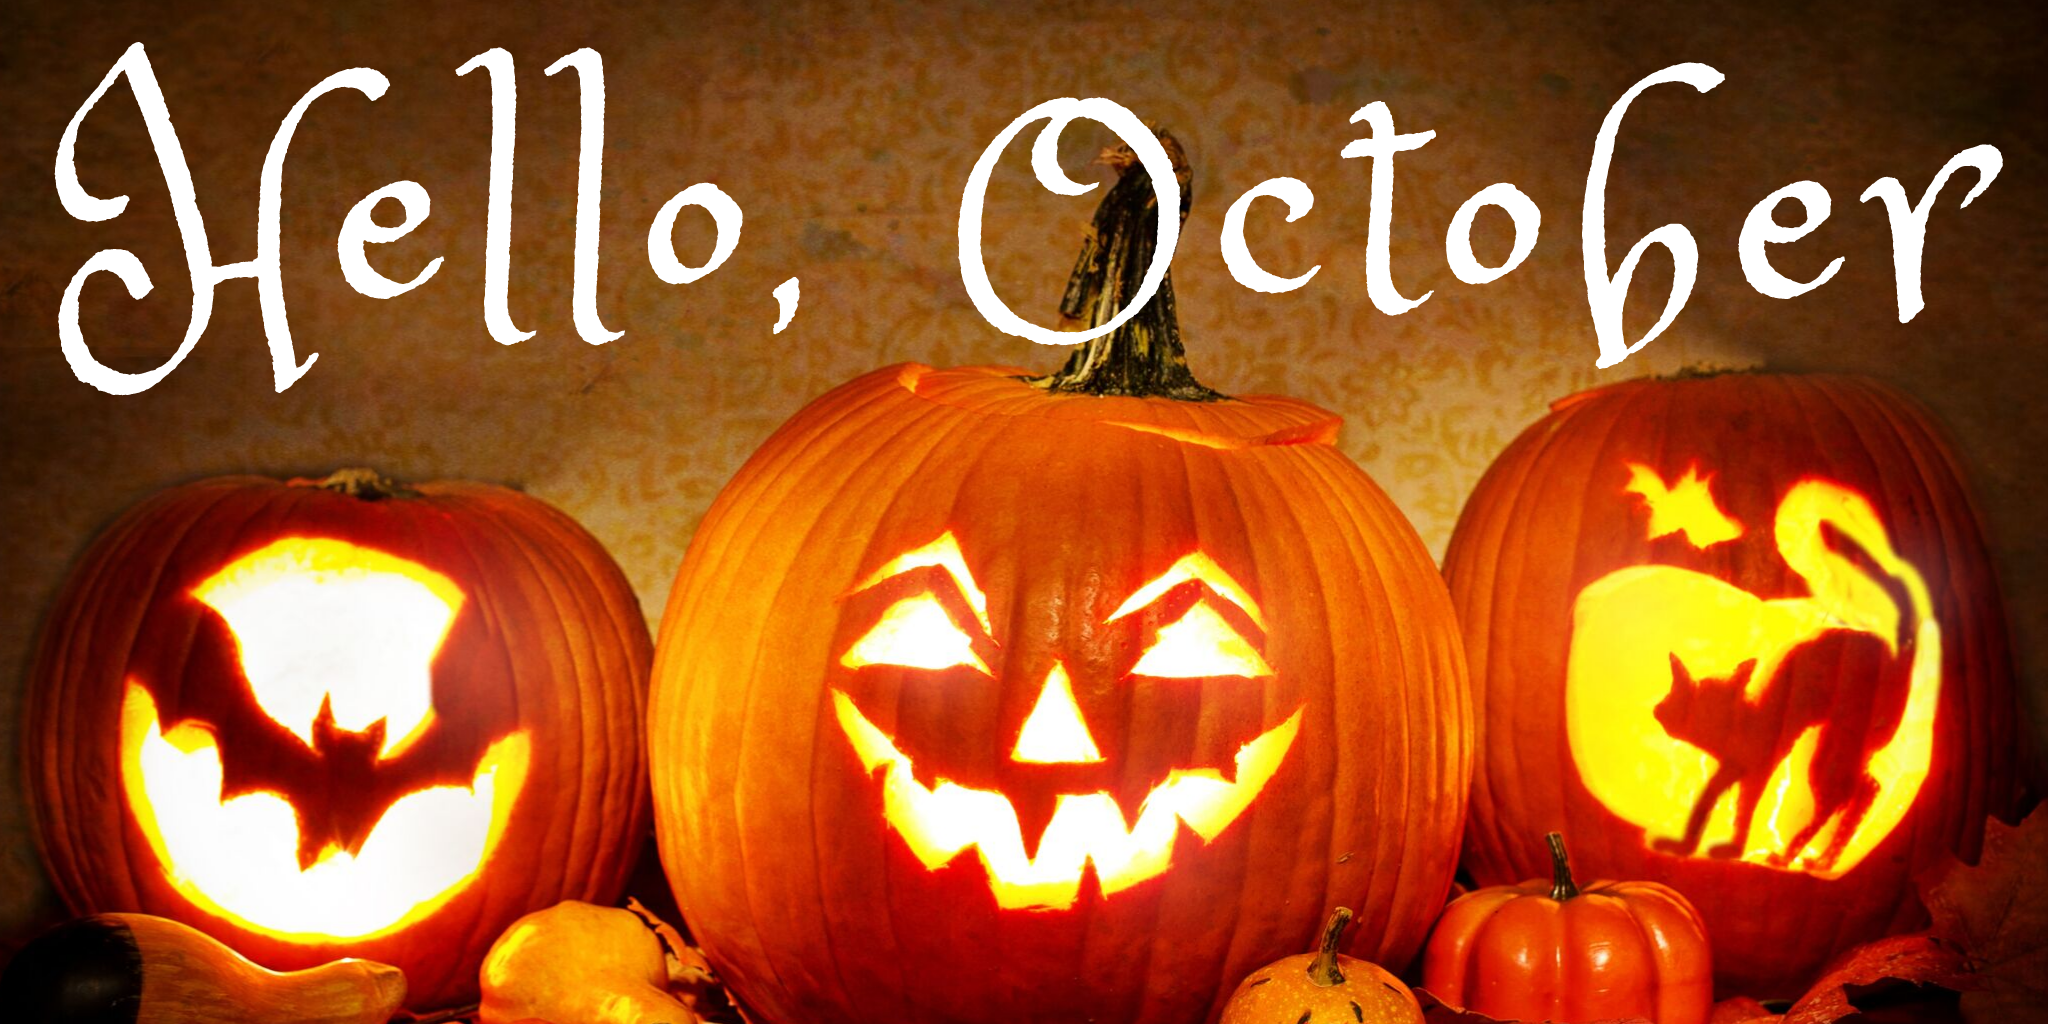 Hello October - October Telecommute Jobs - Virtual Vocations Remote and Flexible Jobs